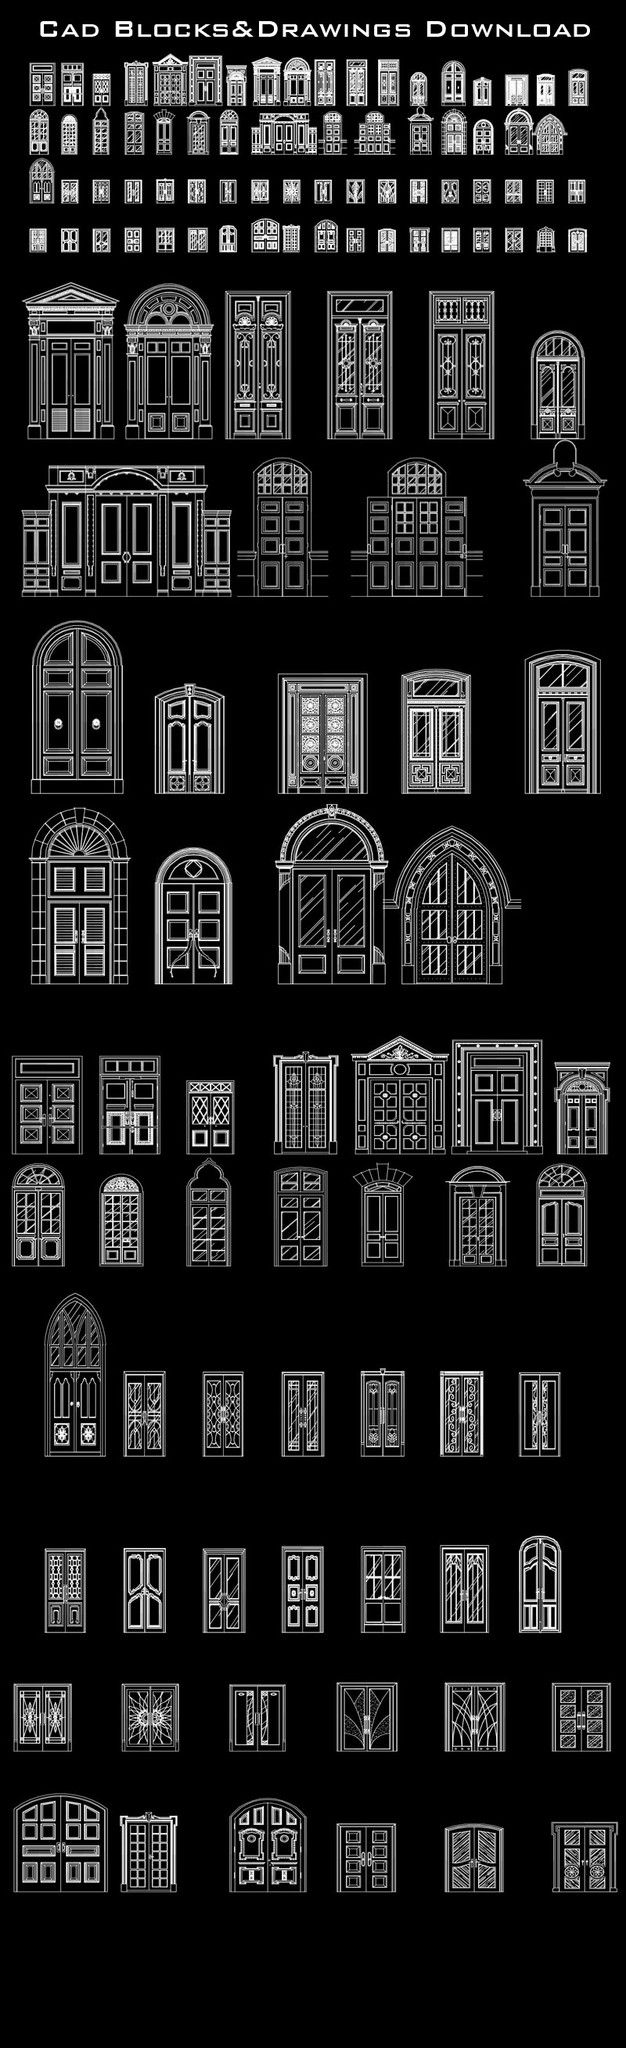 Best door design ideas cad design free cad blocks for Online cad drawing